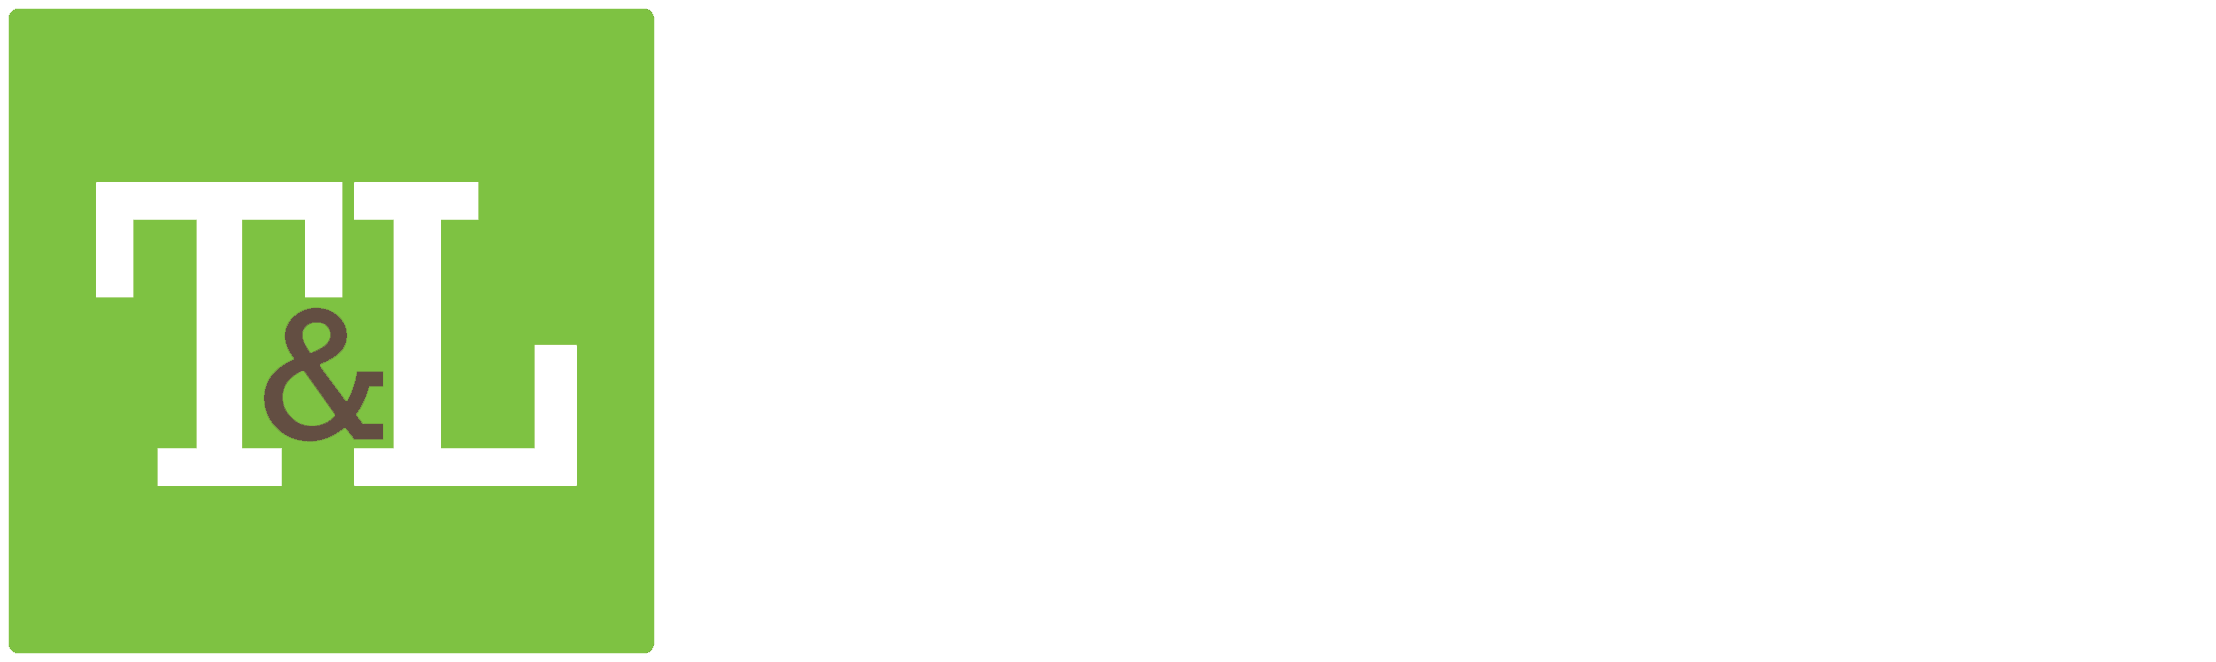 Homepage - National Forum for the Enhancement of Teaching